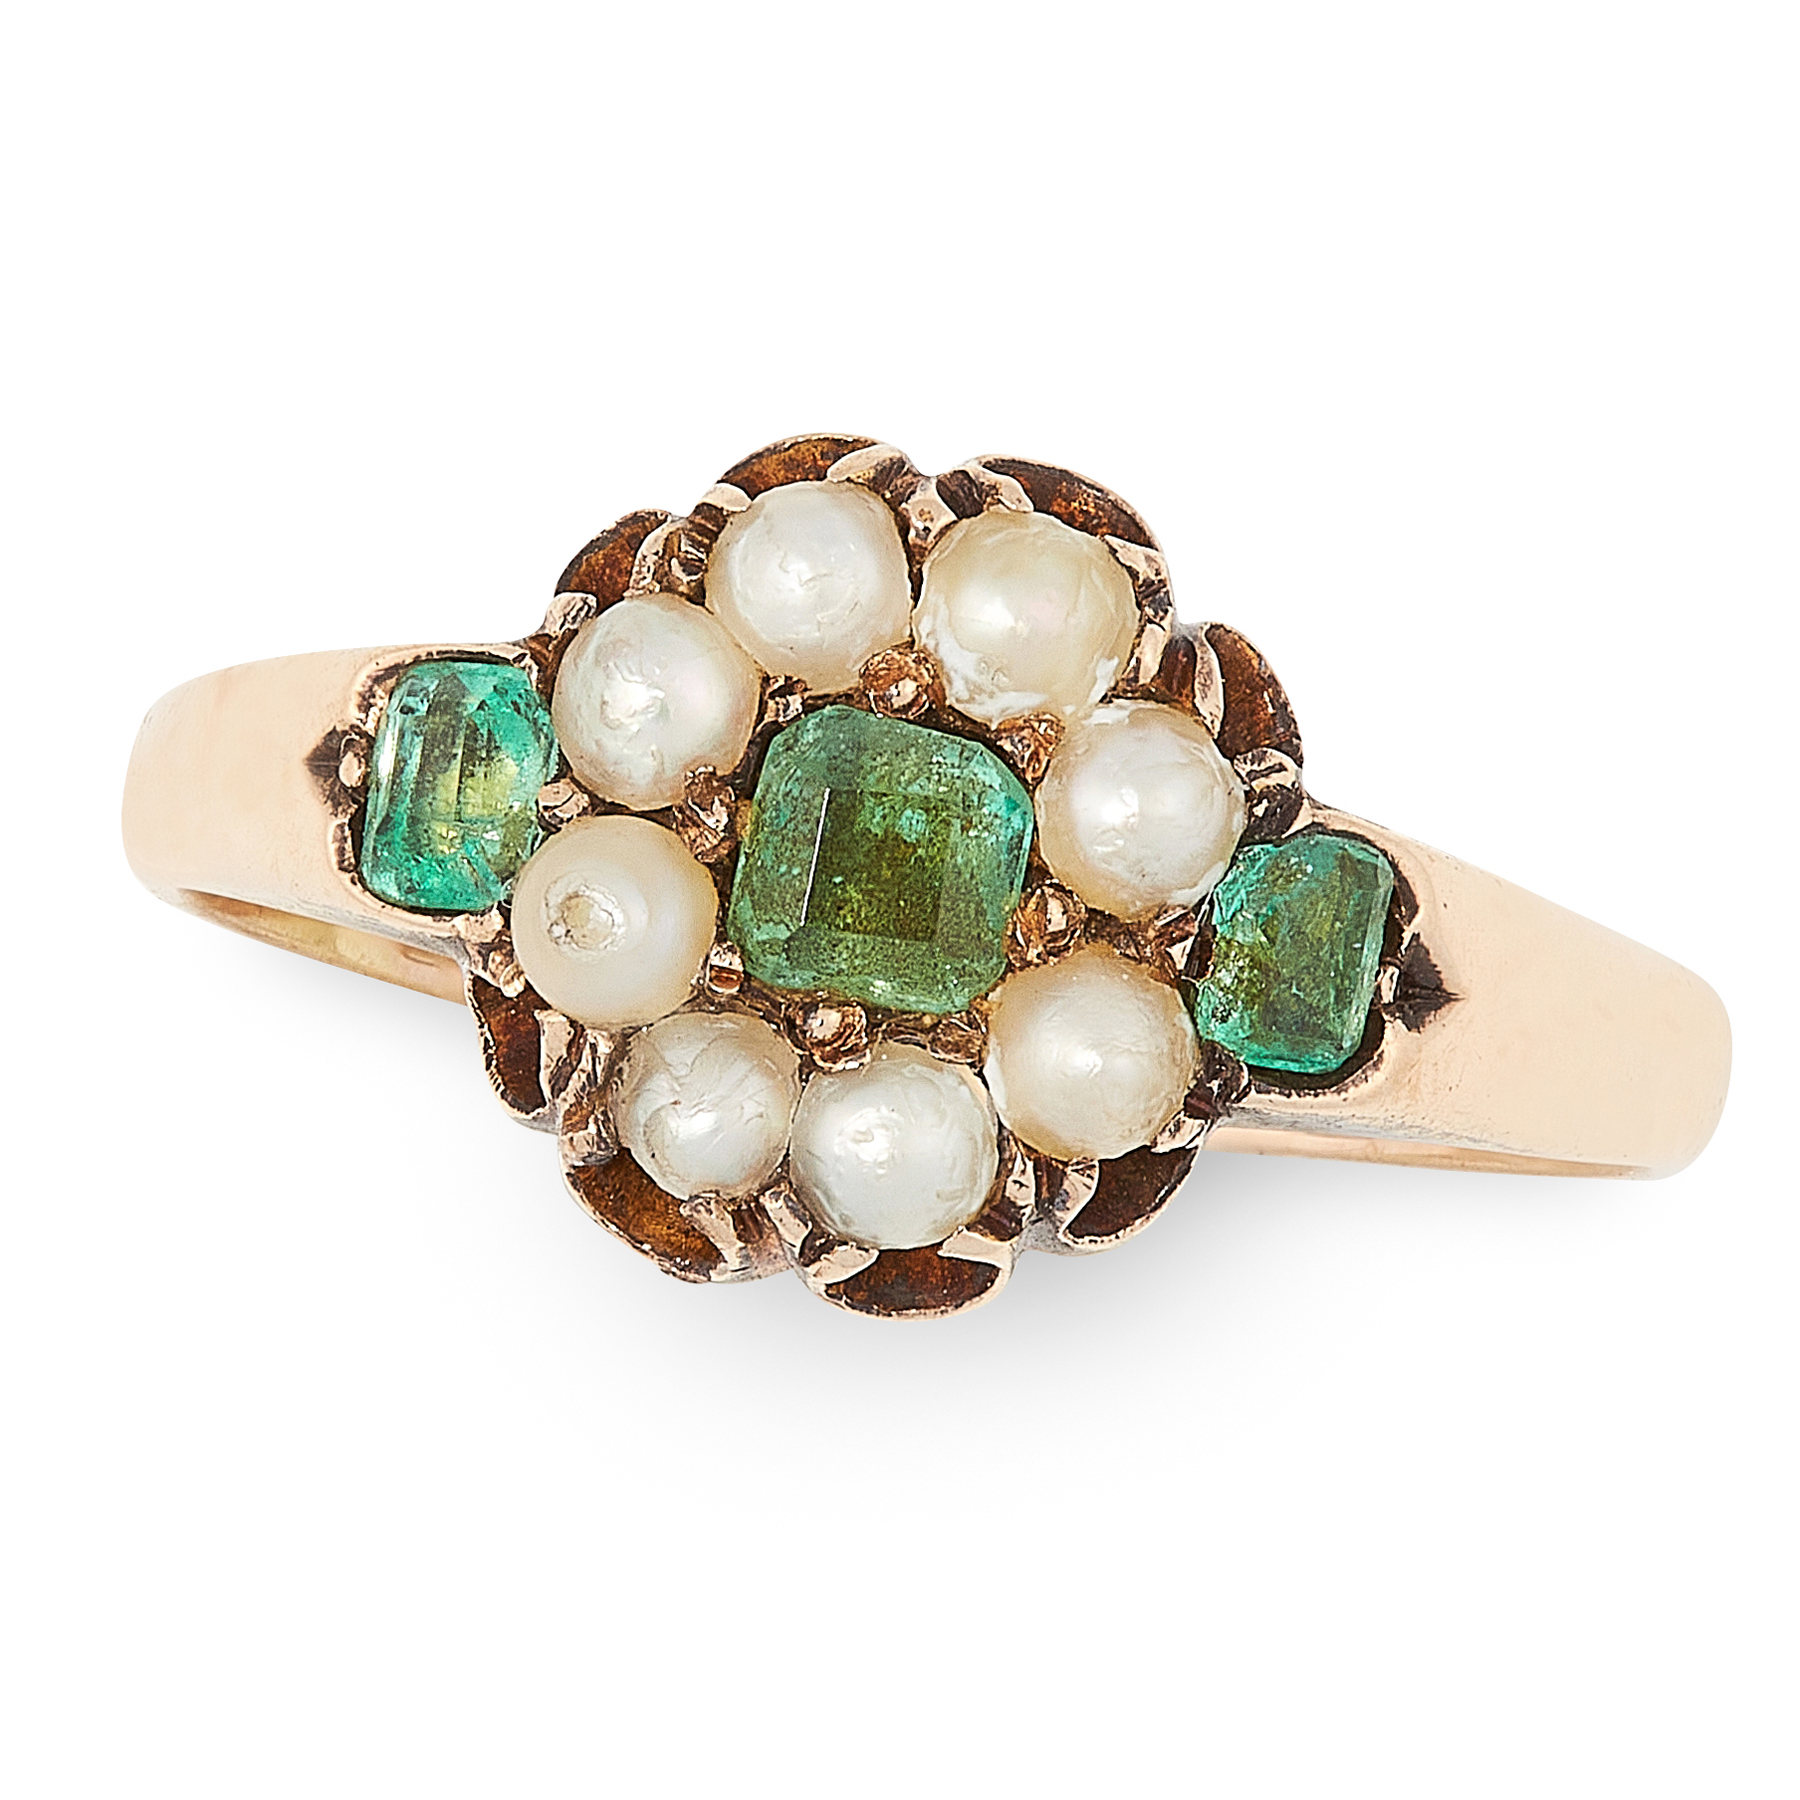 AN ANTIQUE EMERALD AND PEARL RING set with a trio of step cut emeralds accented by a border of